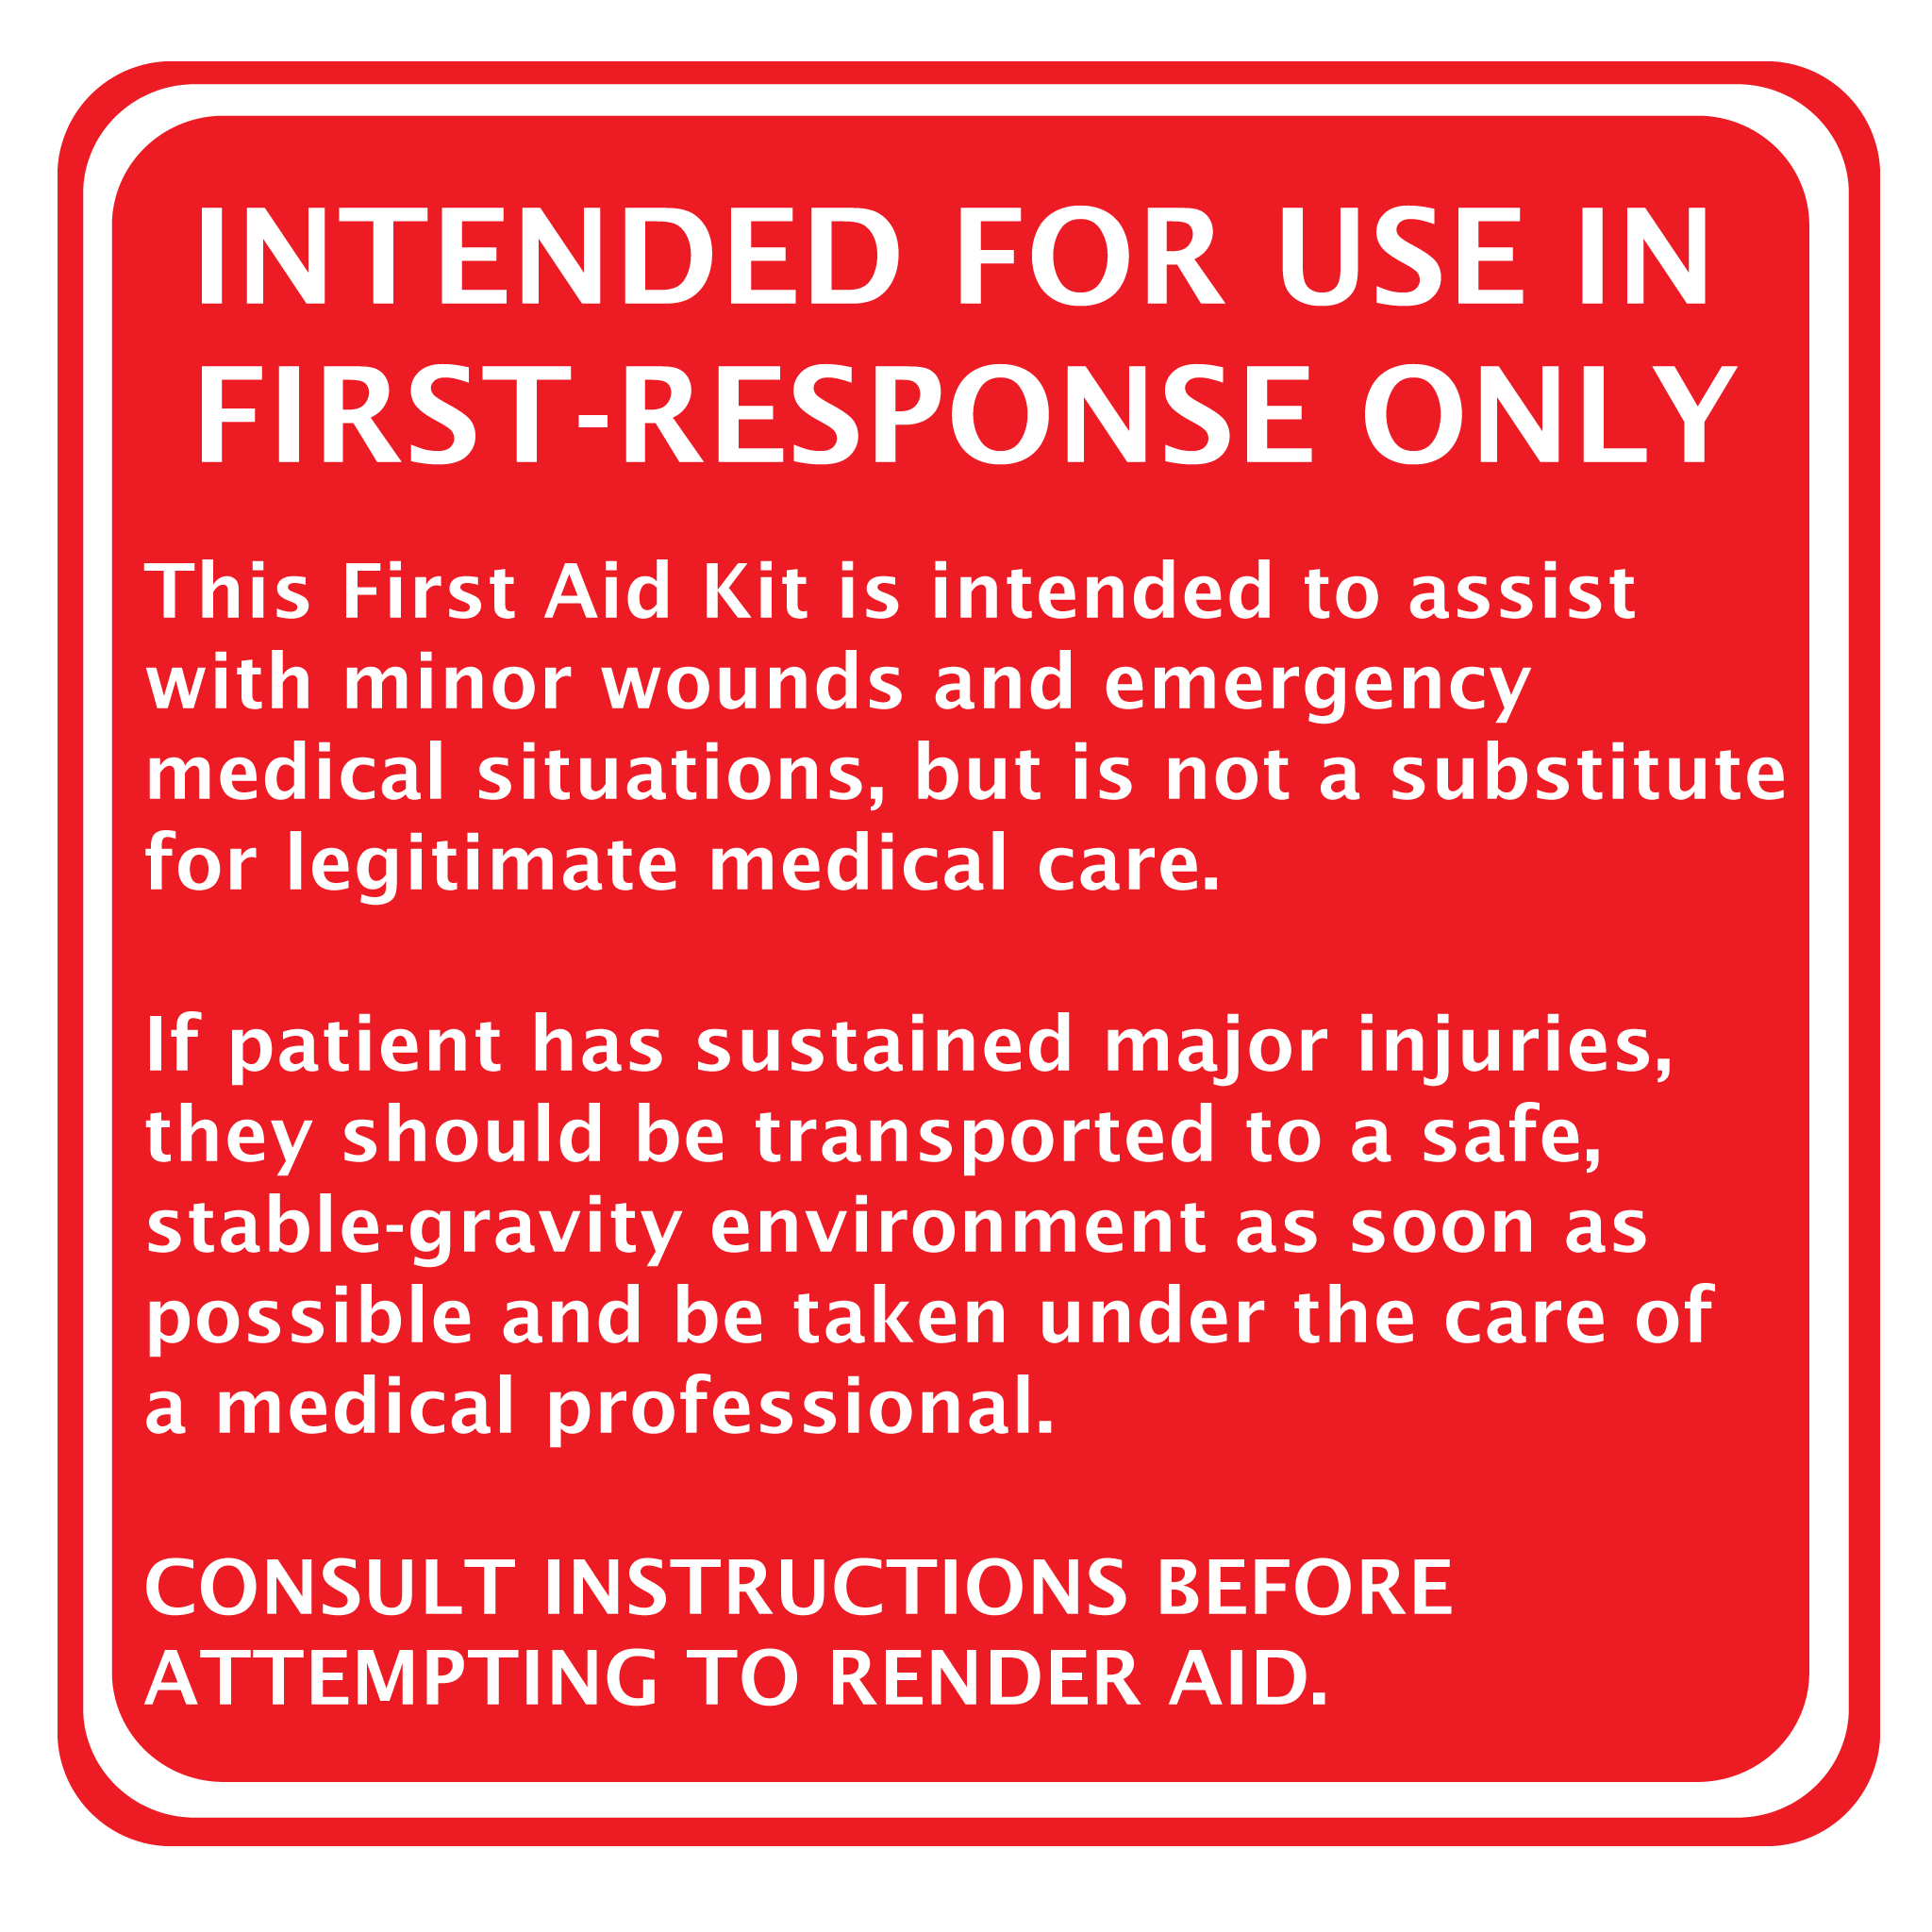 FirstResponseOnly.png